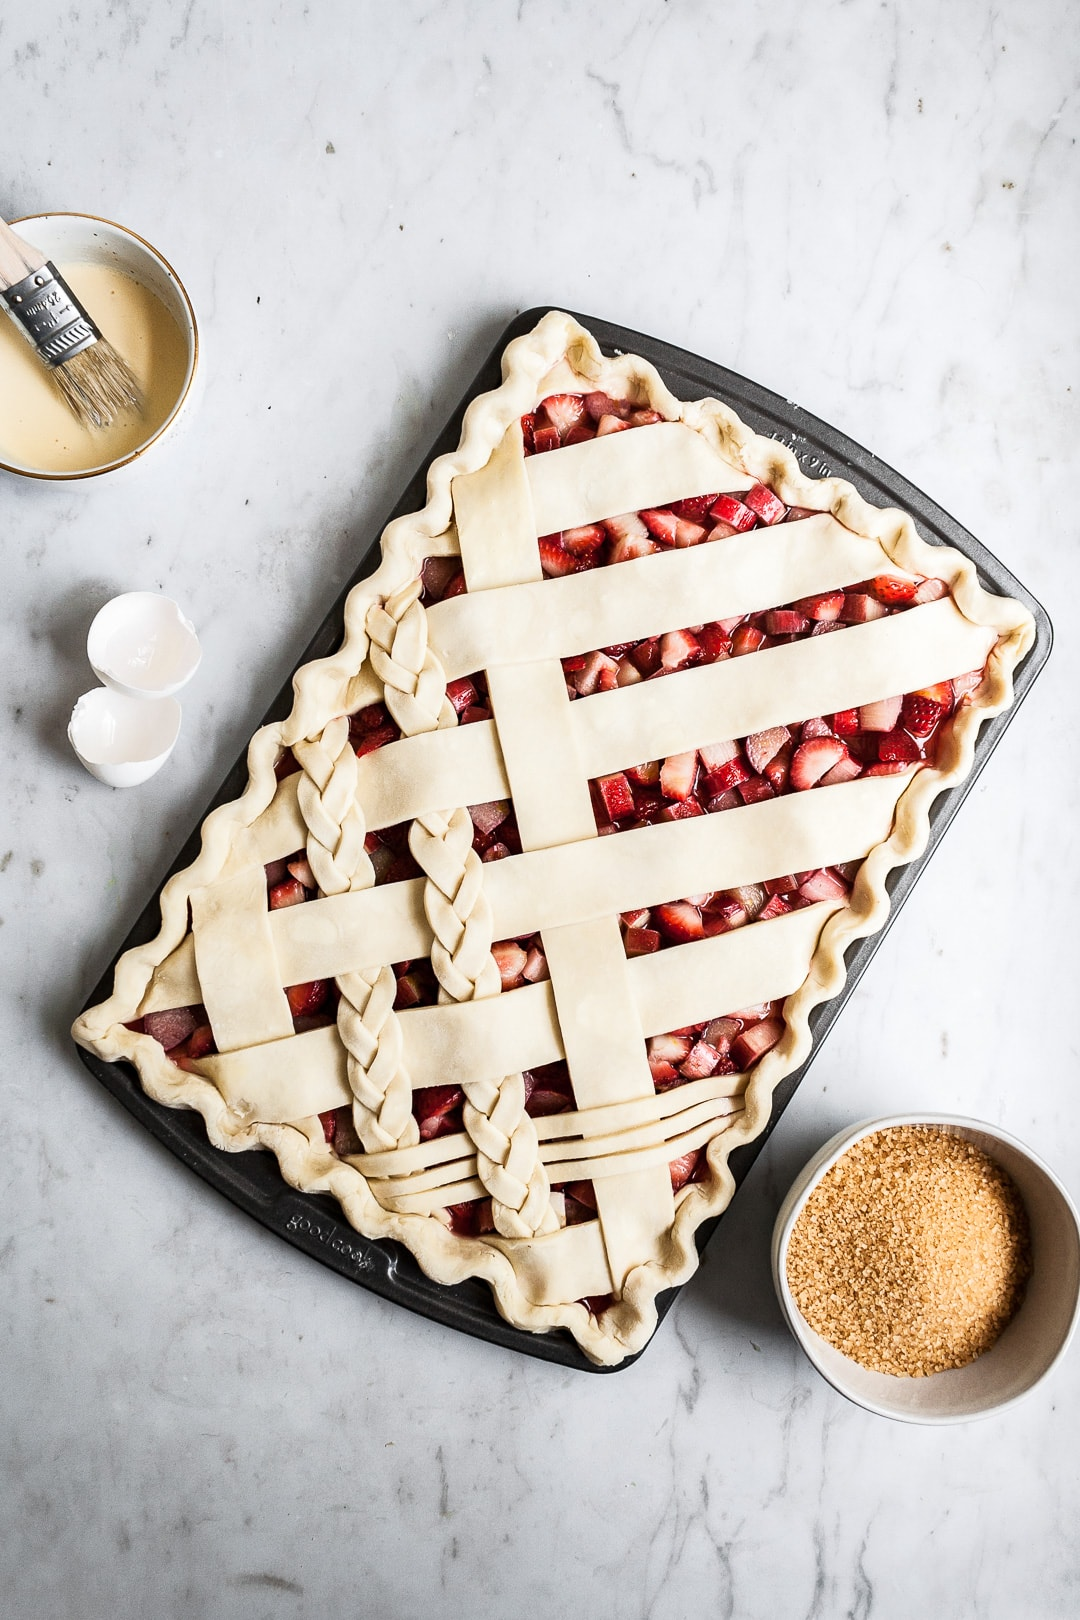 Crimped unbaked lattice slab pie crust in sheet pan on a marble background with bowls of sugar and egg wash nearby